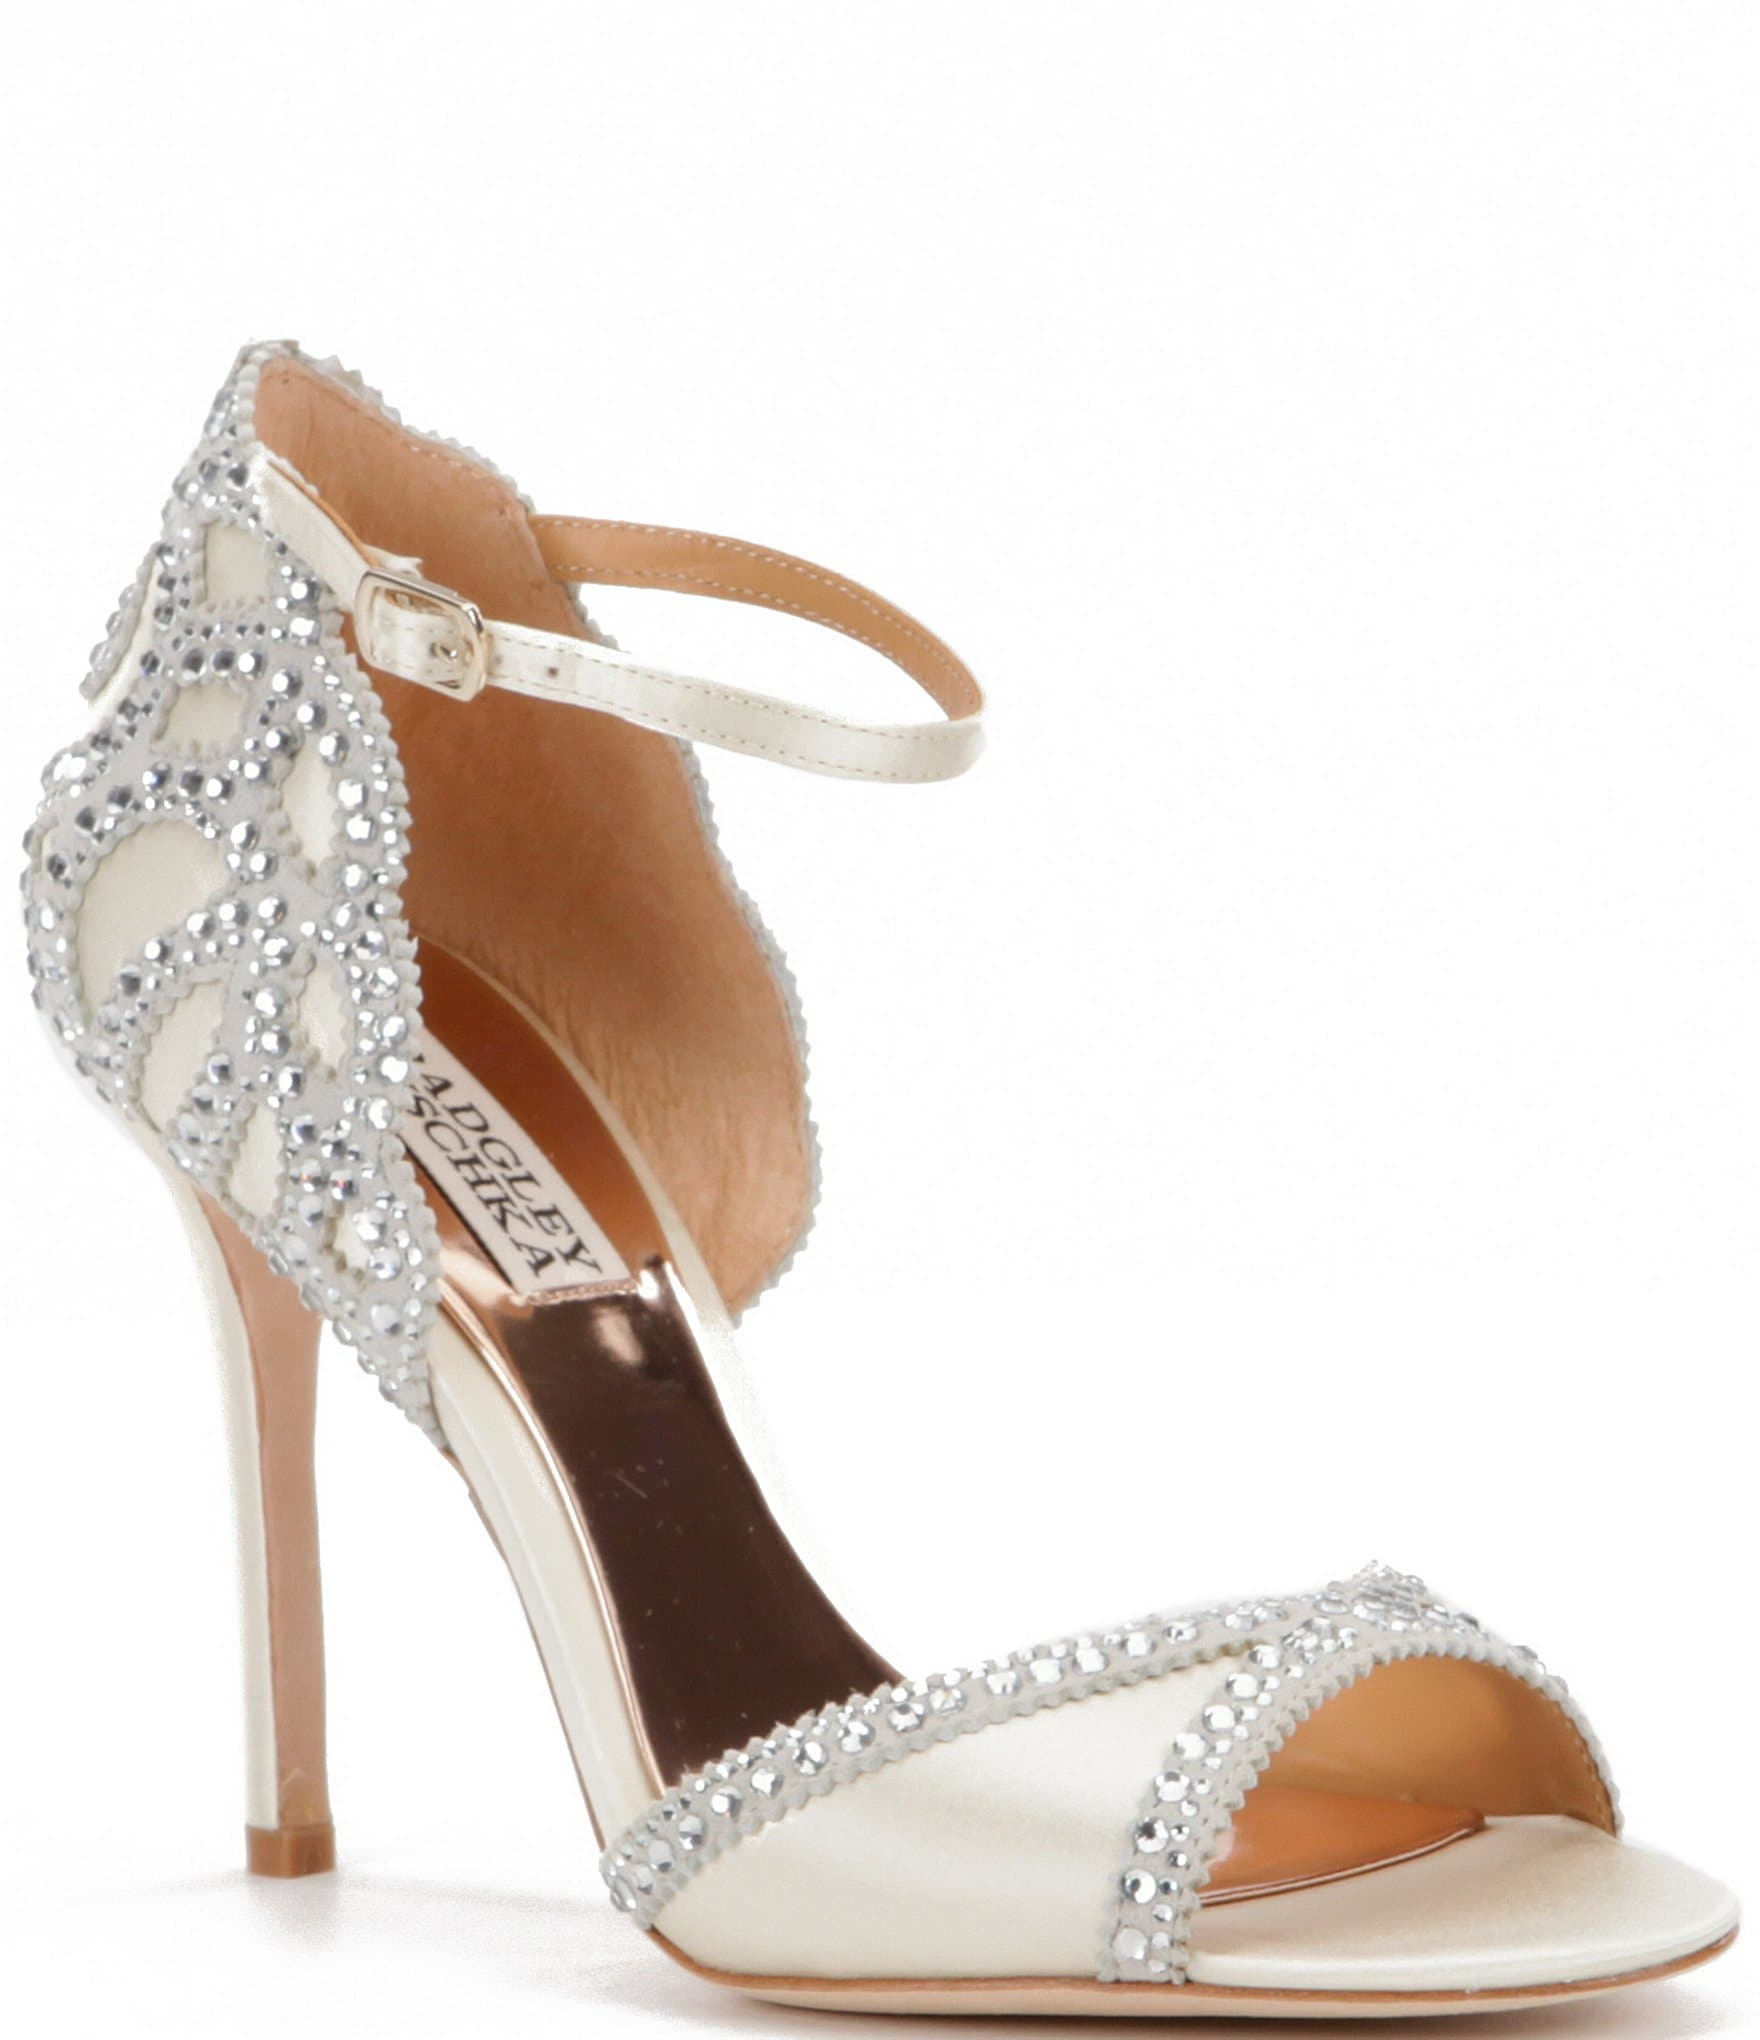 82edae7ebd1 Badgley Mischka Women s Bridal   Wedding Shoes